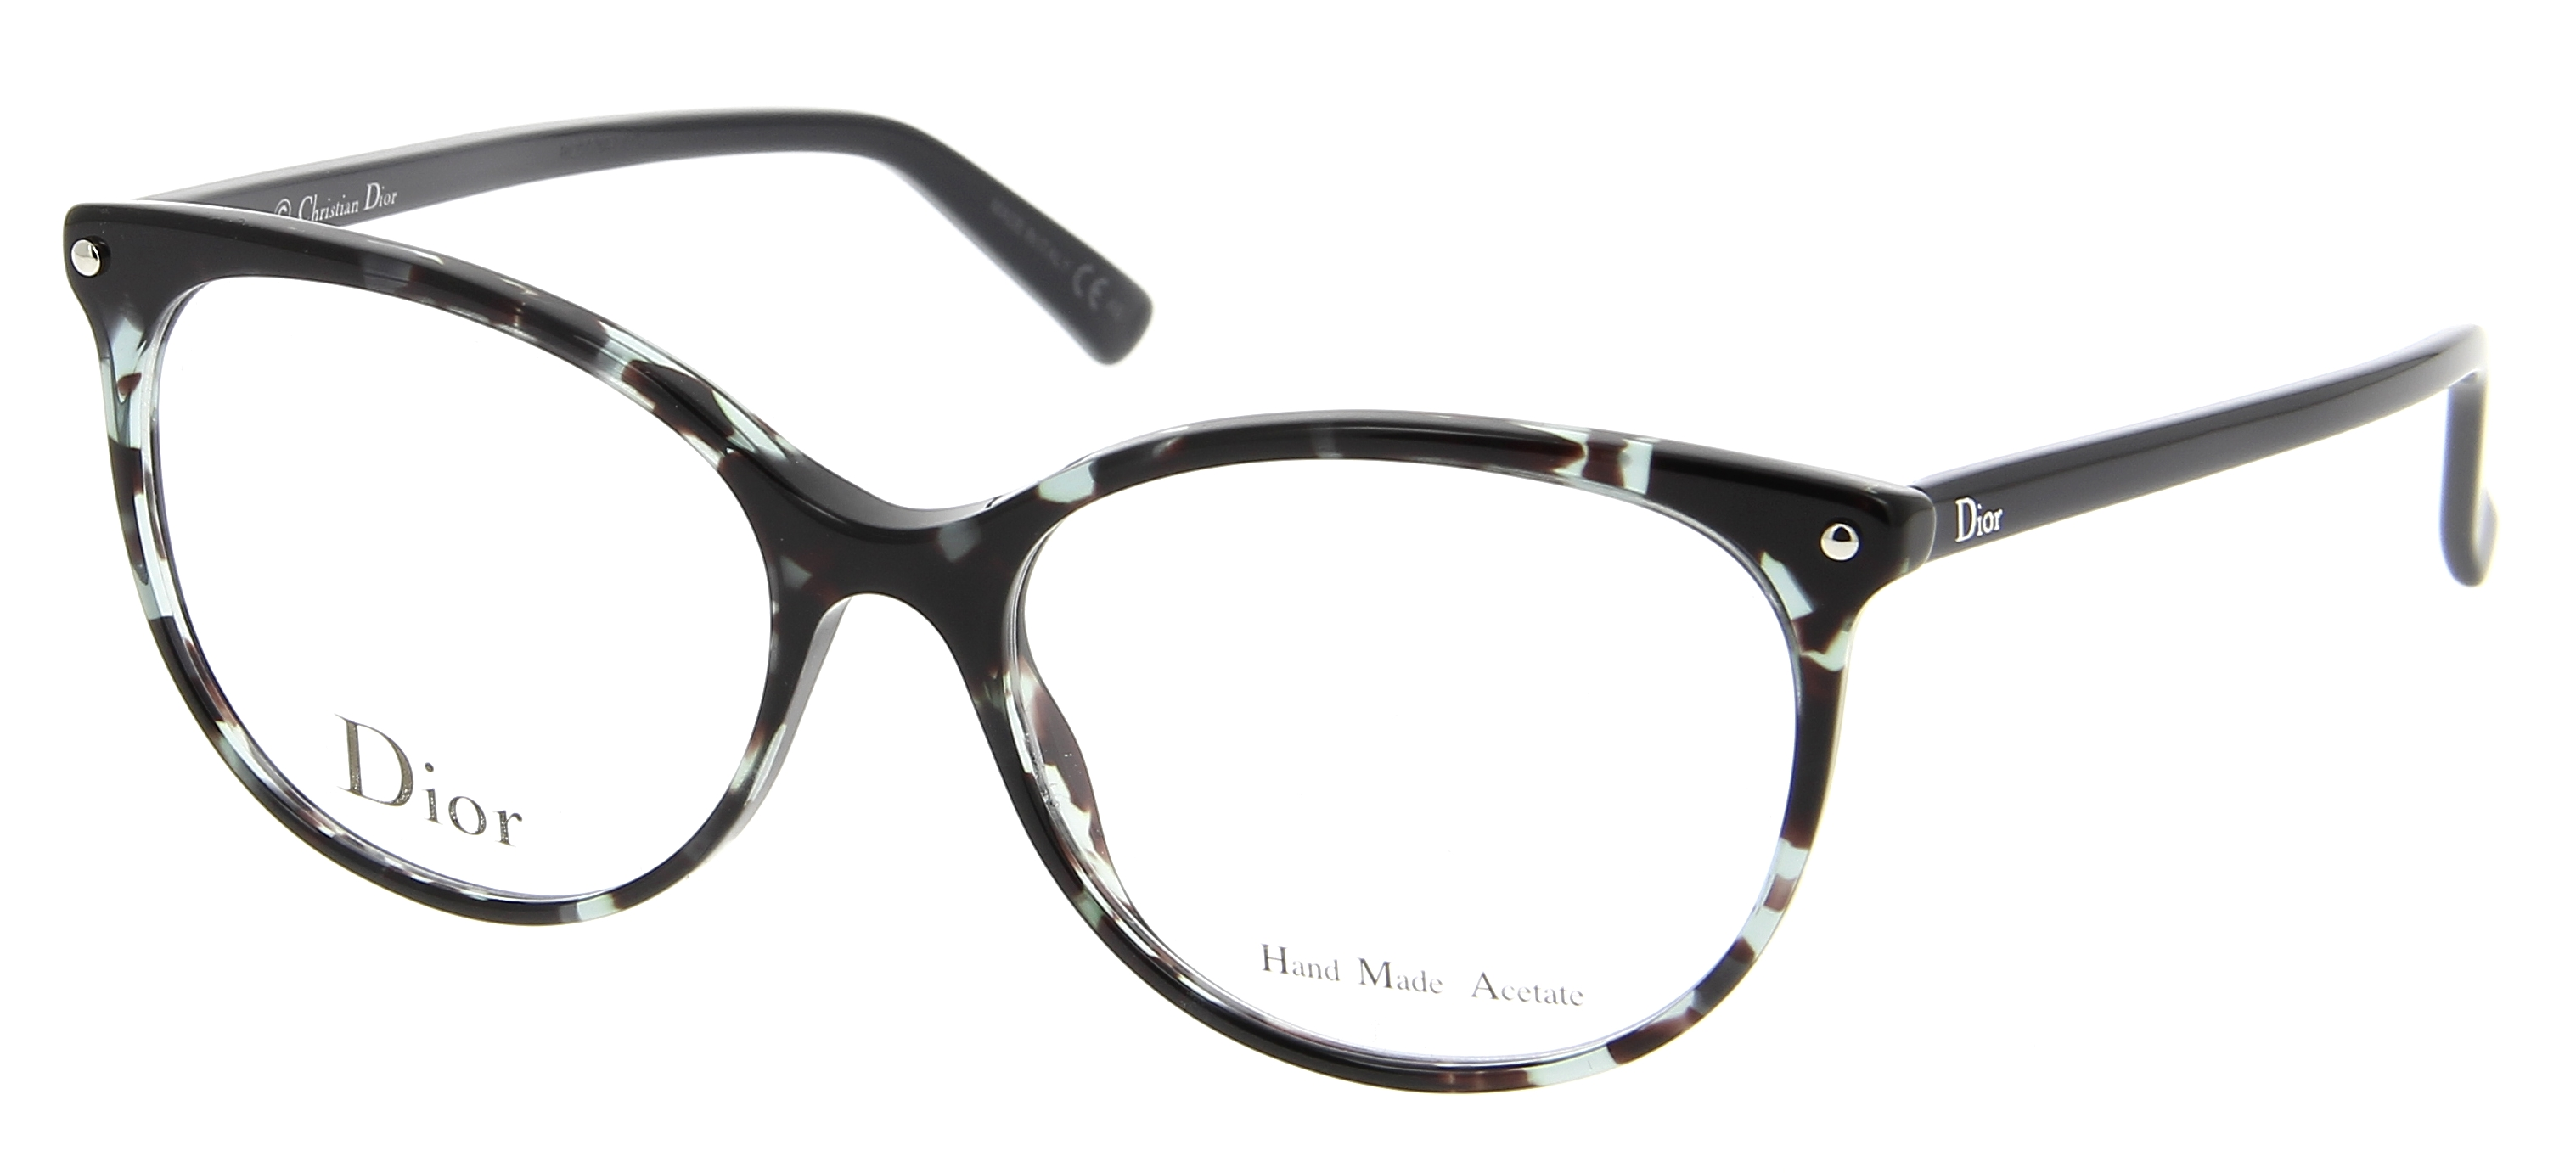 Ban Femme Lunettes Krys Lunettes Ray Ray gqtwxqInP 719f1727abfe